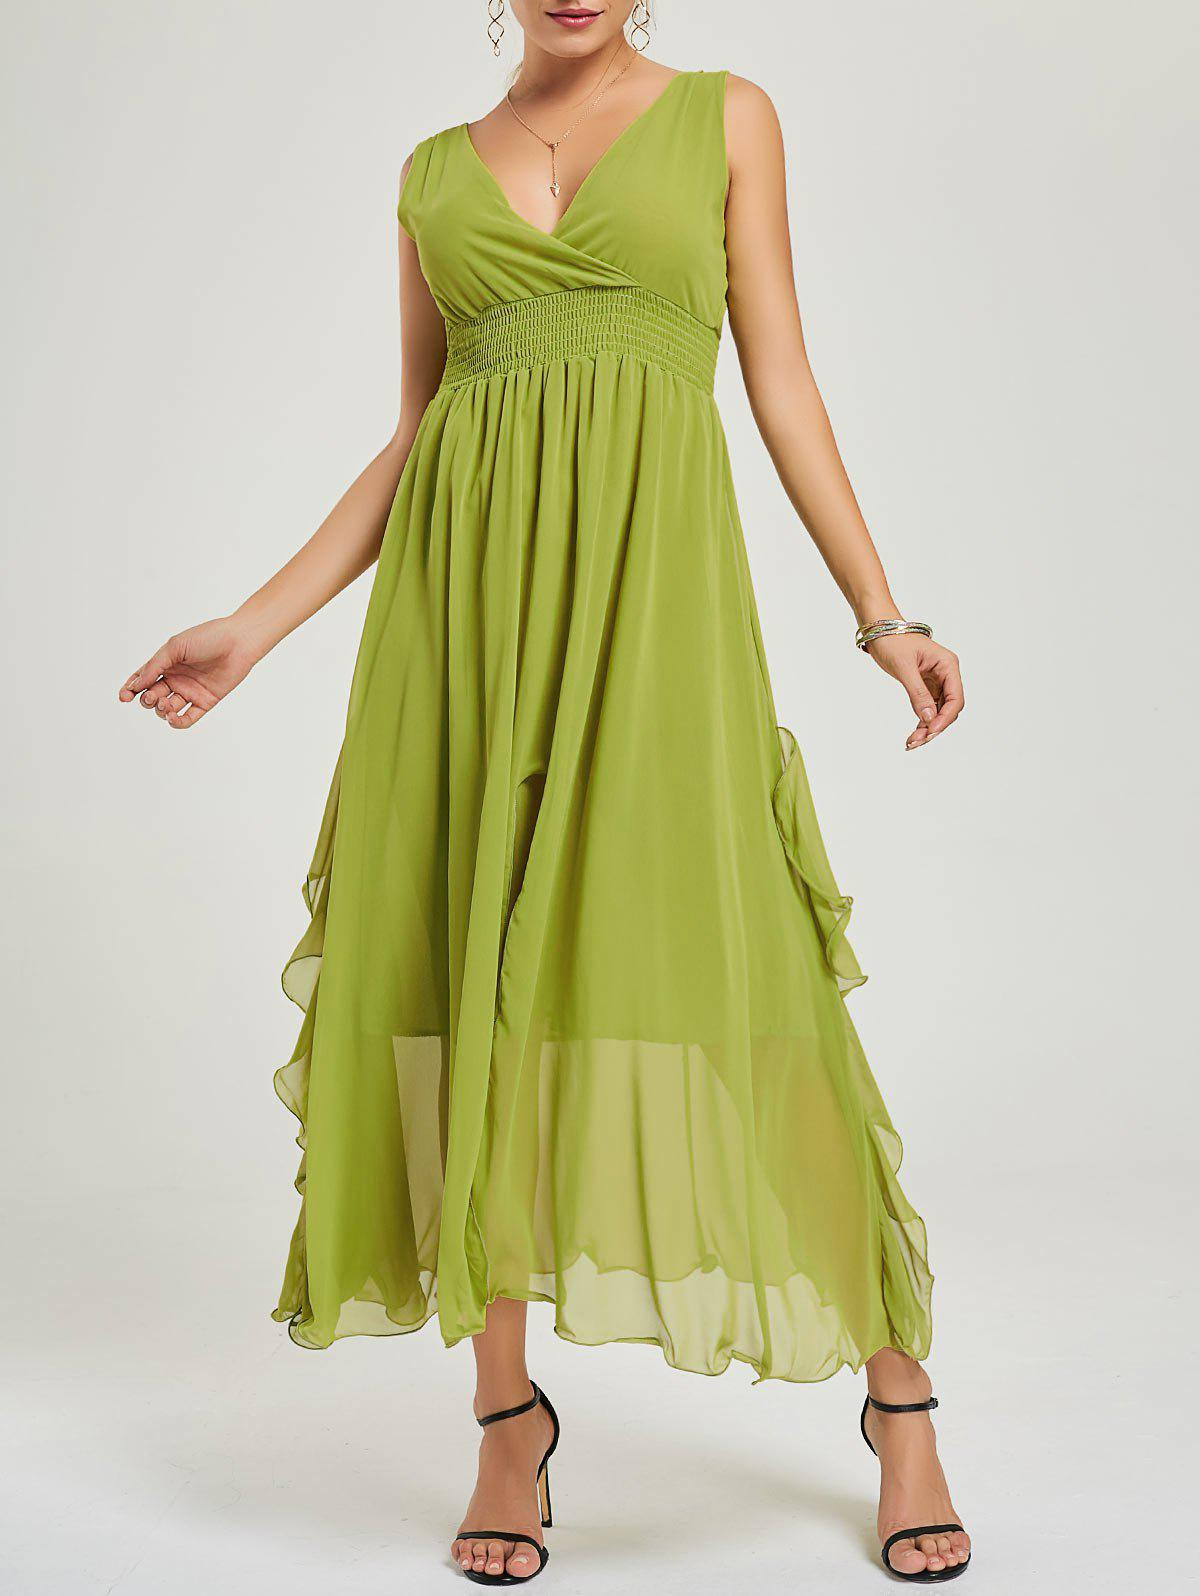 Empire Waist Chiffon Ruffle Dress - Vert M